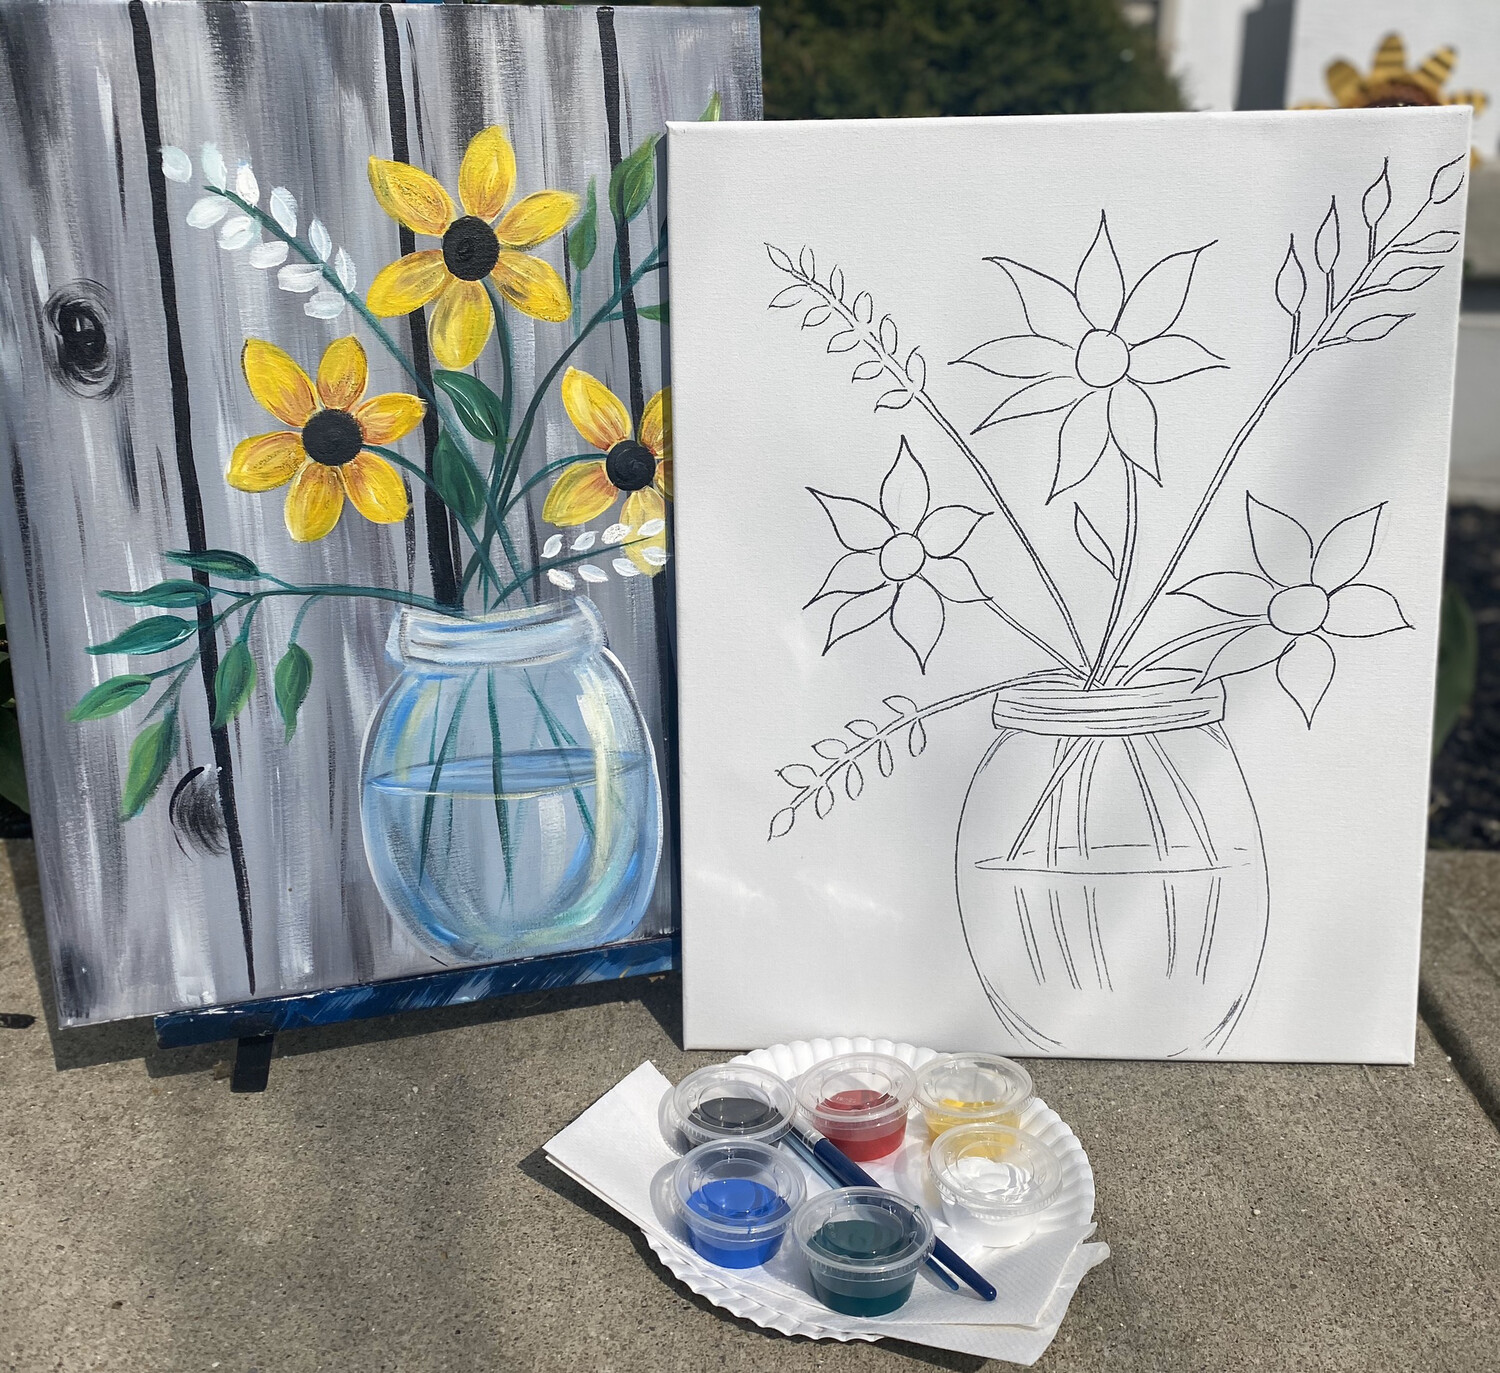 Vase Of Flowers • At Home Art Kit 16x20